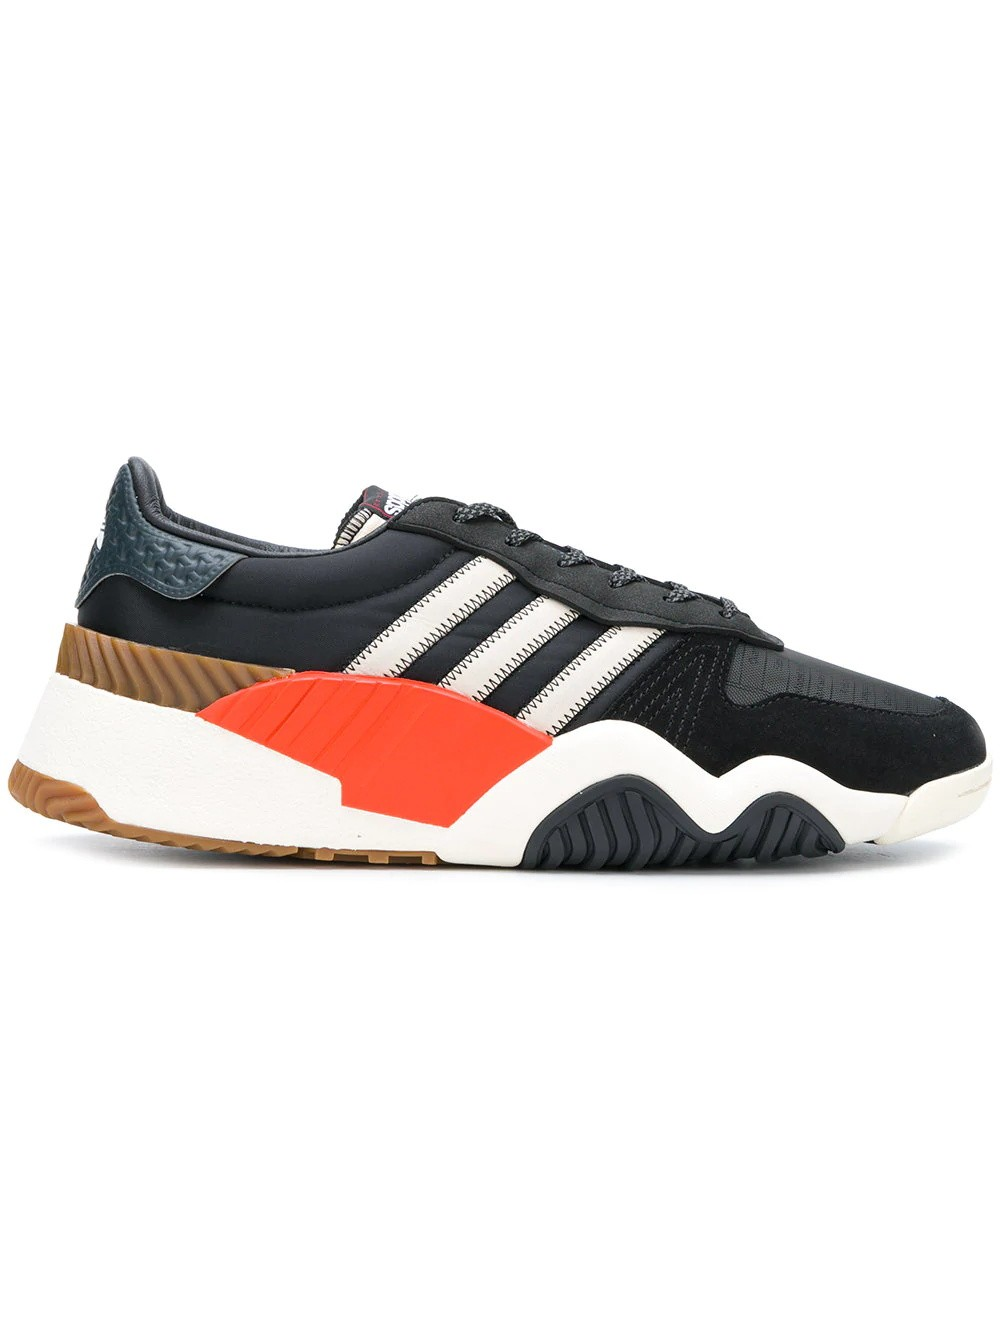 Adidas Originals by Alexander Wang Turnout Trainer Chaussures - Noir AQ1237